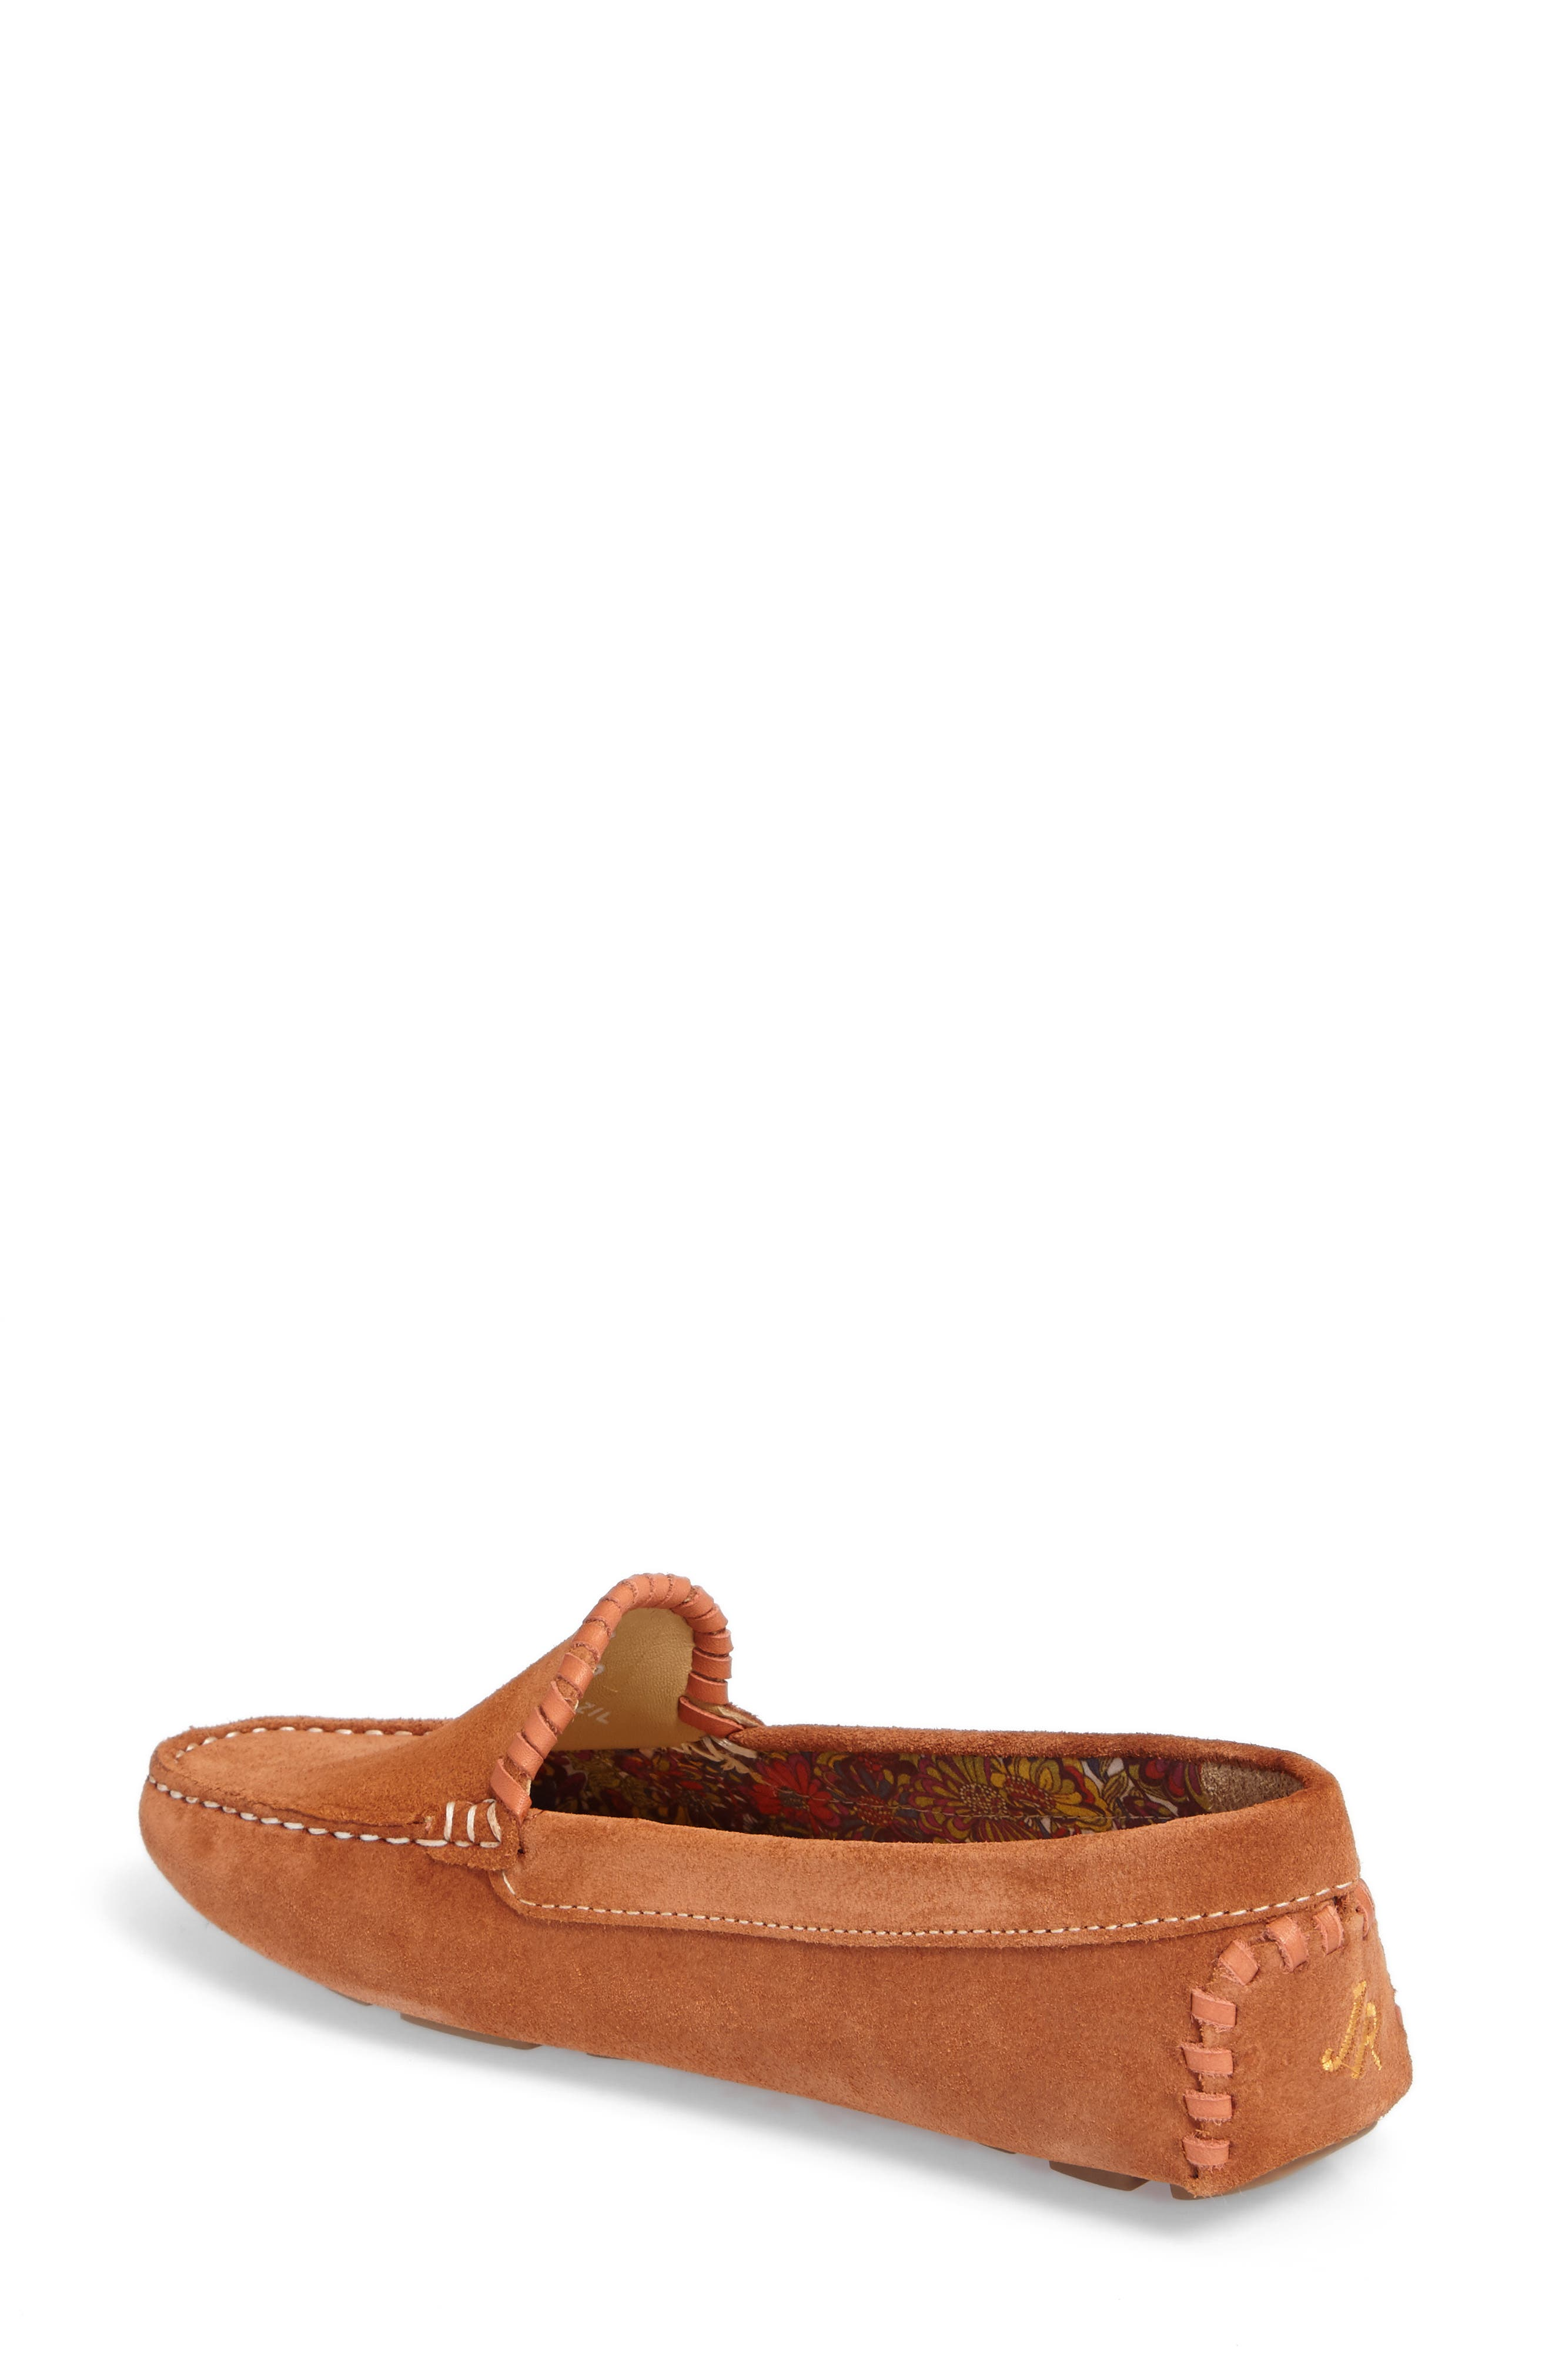 Taylor Driving Loafer,                             Alternate thumbnail 2, color,                             800